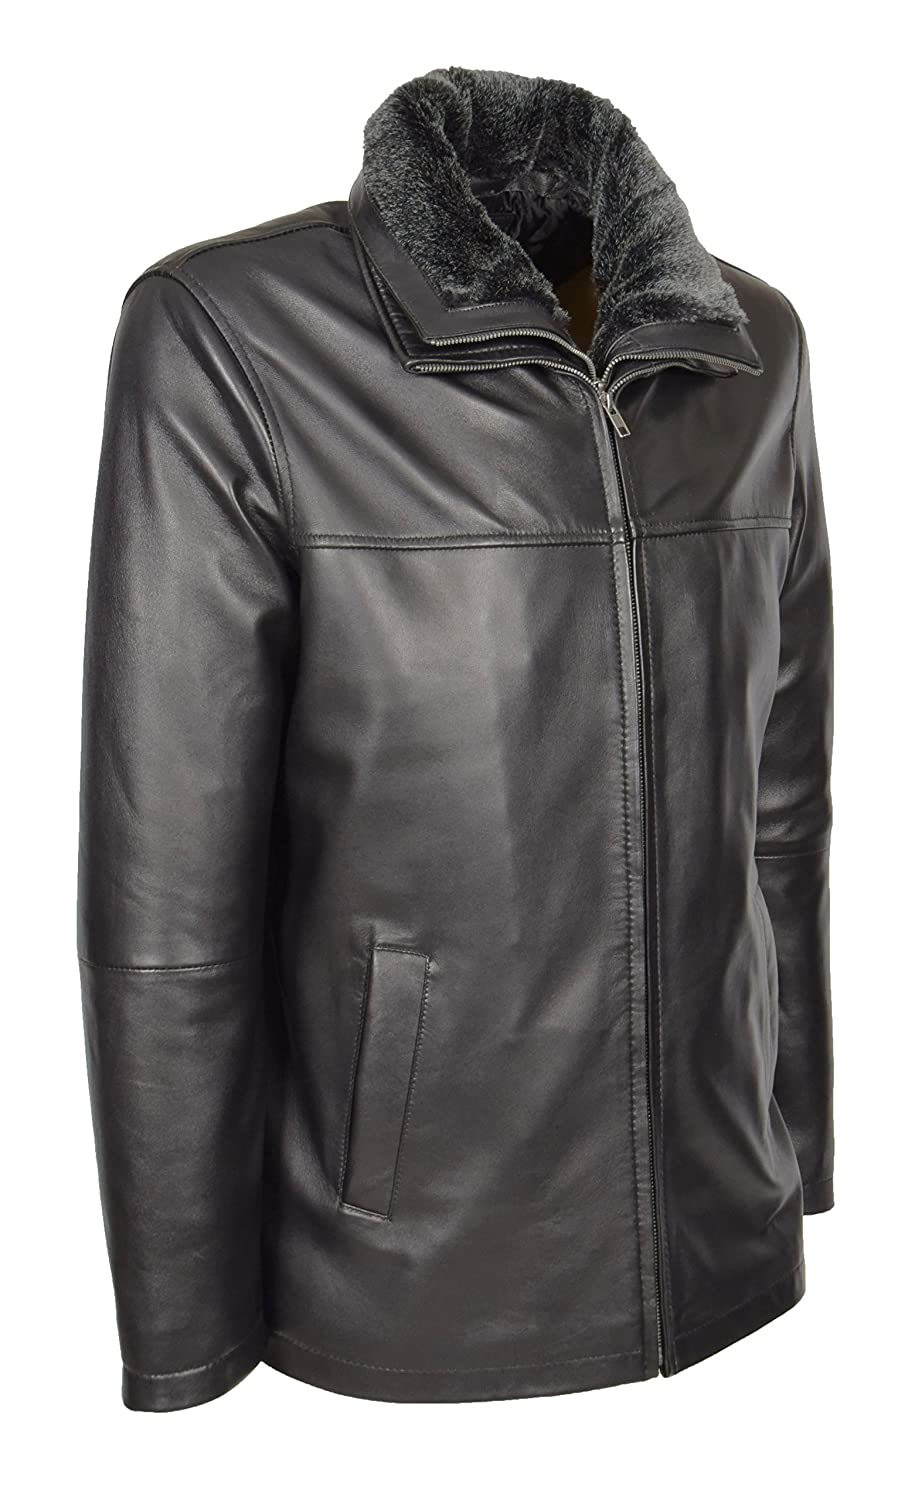 A1 FASHION GOODS Mens Real Leather Jacket Black Box Hip Length Parka Coat William William Black